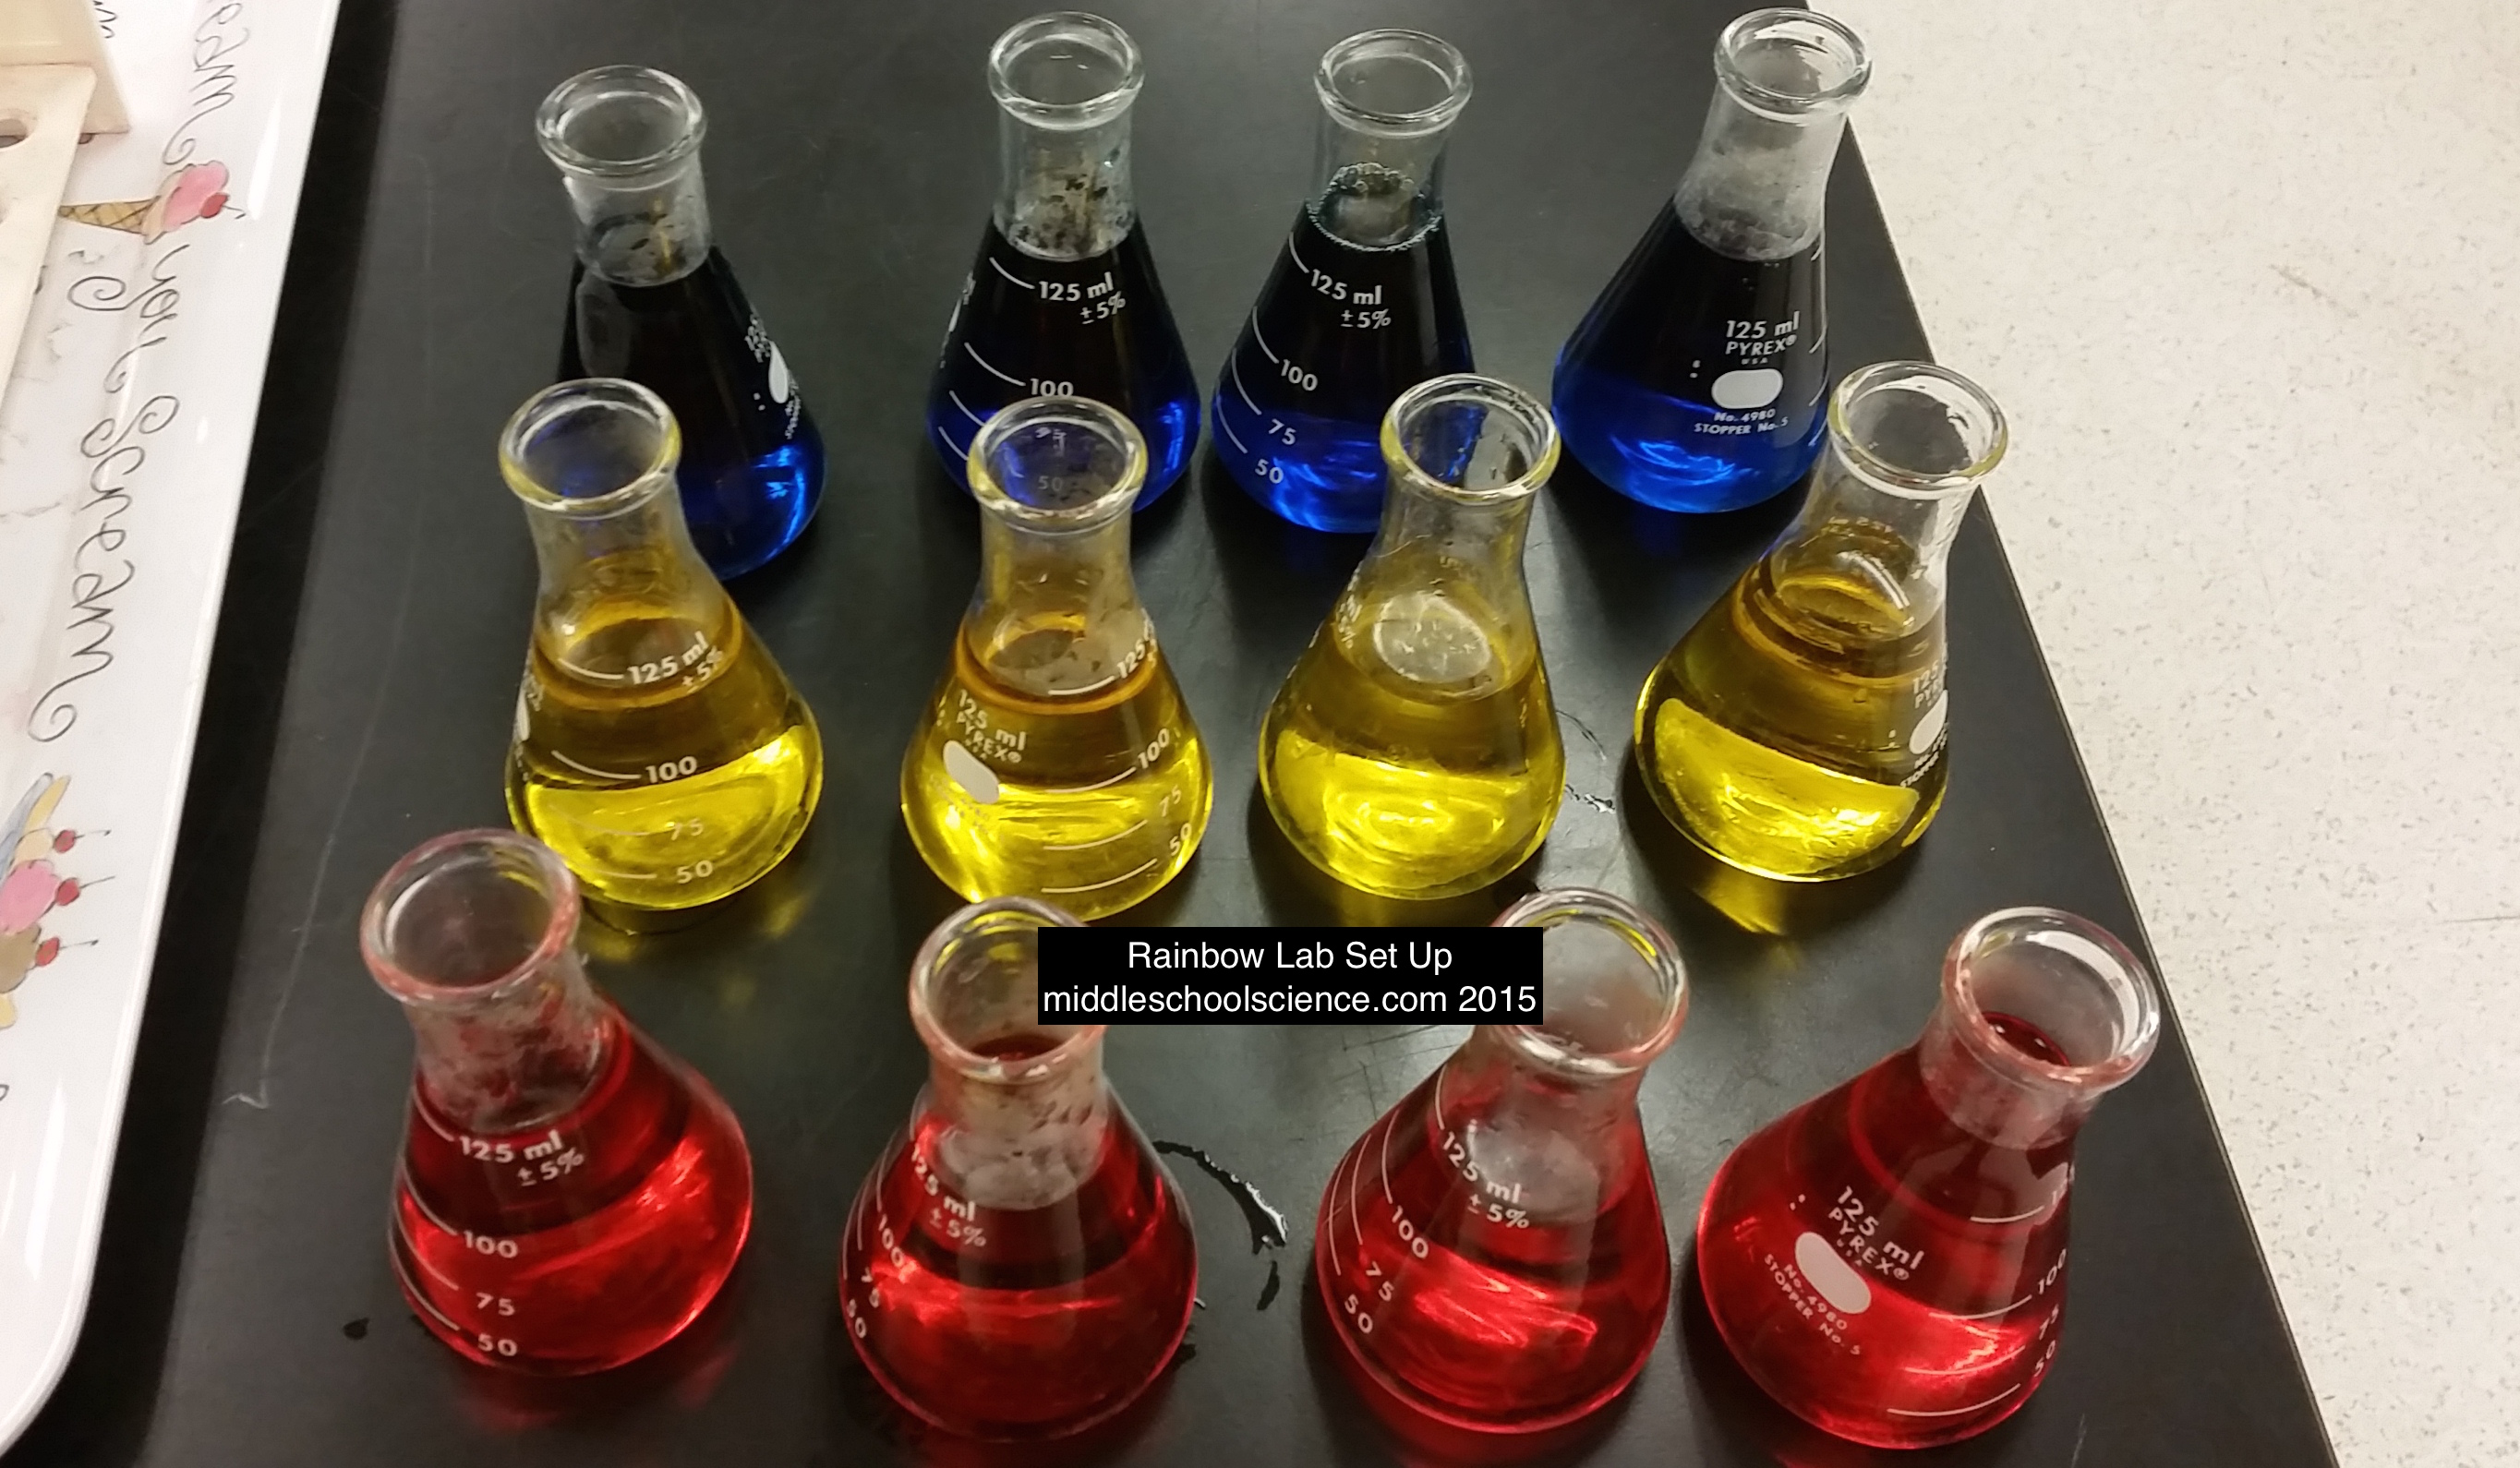 Rainbowlabsetupflasks Middle School Science Blog